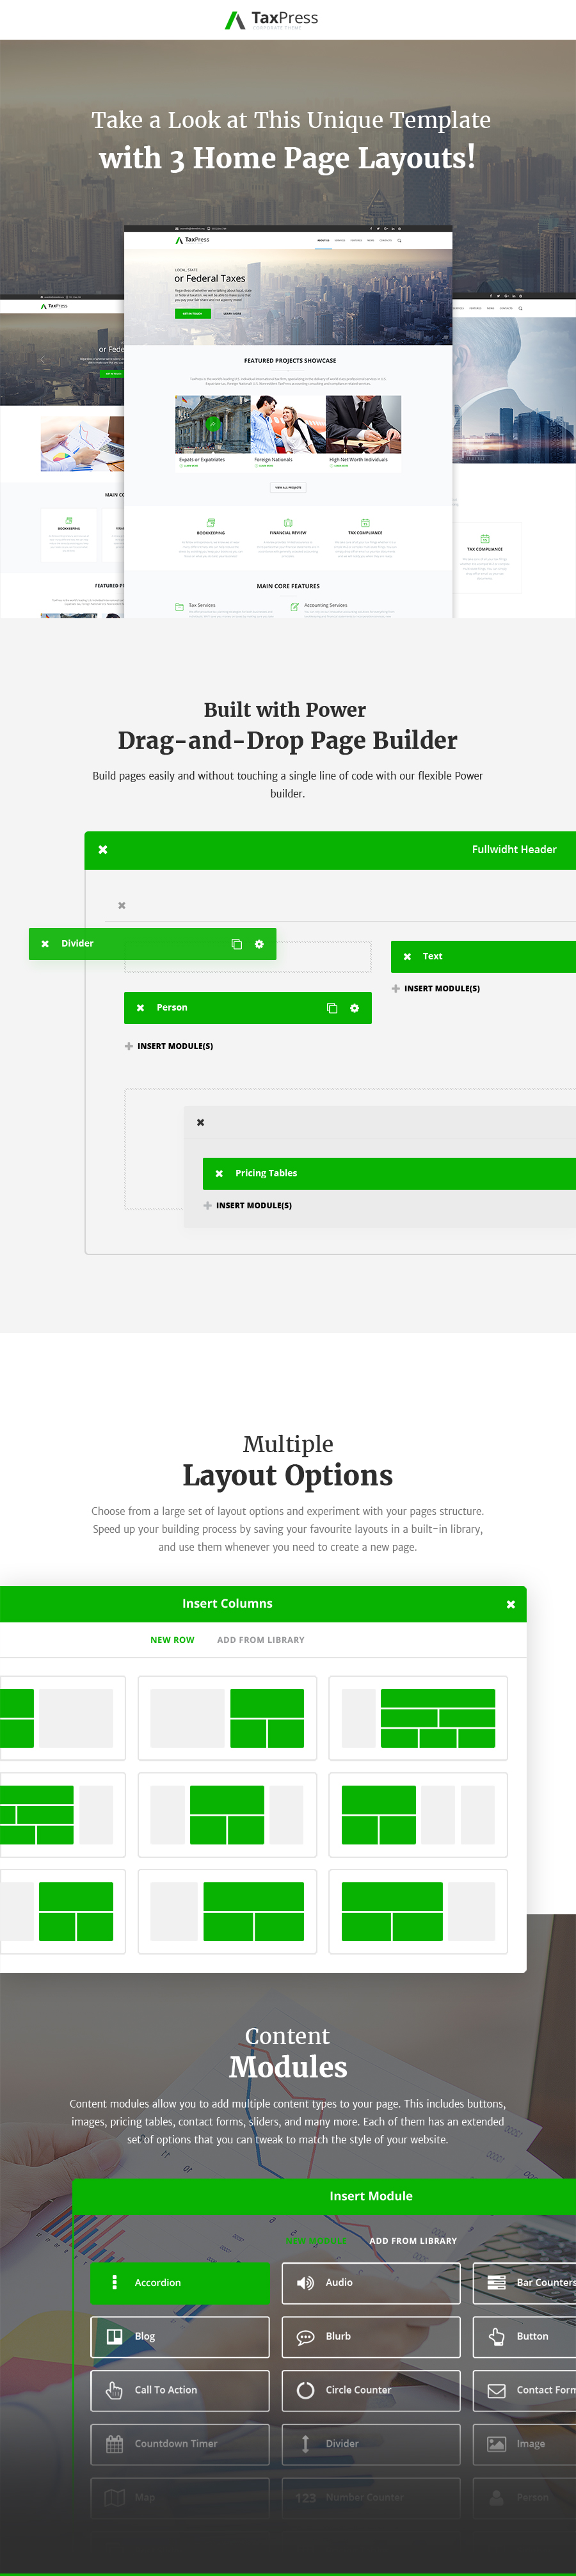 TaxPress - Consulting Services WordPress Theme - 1